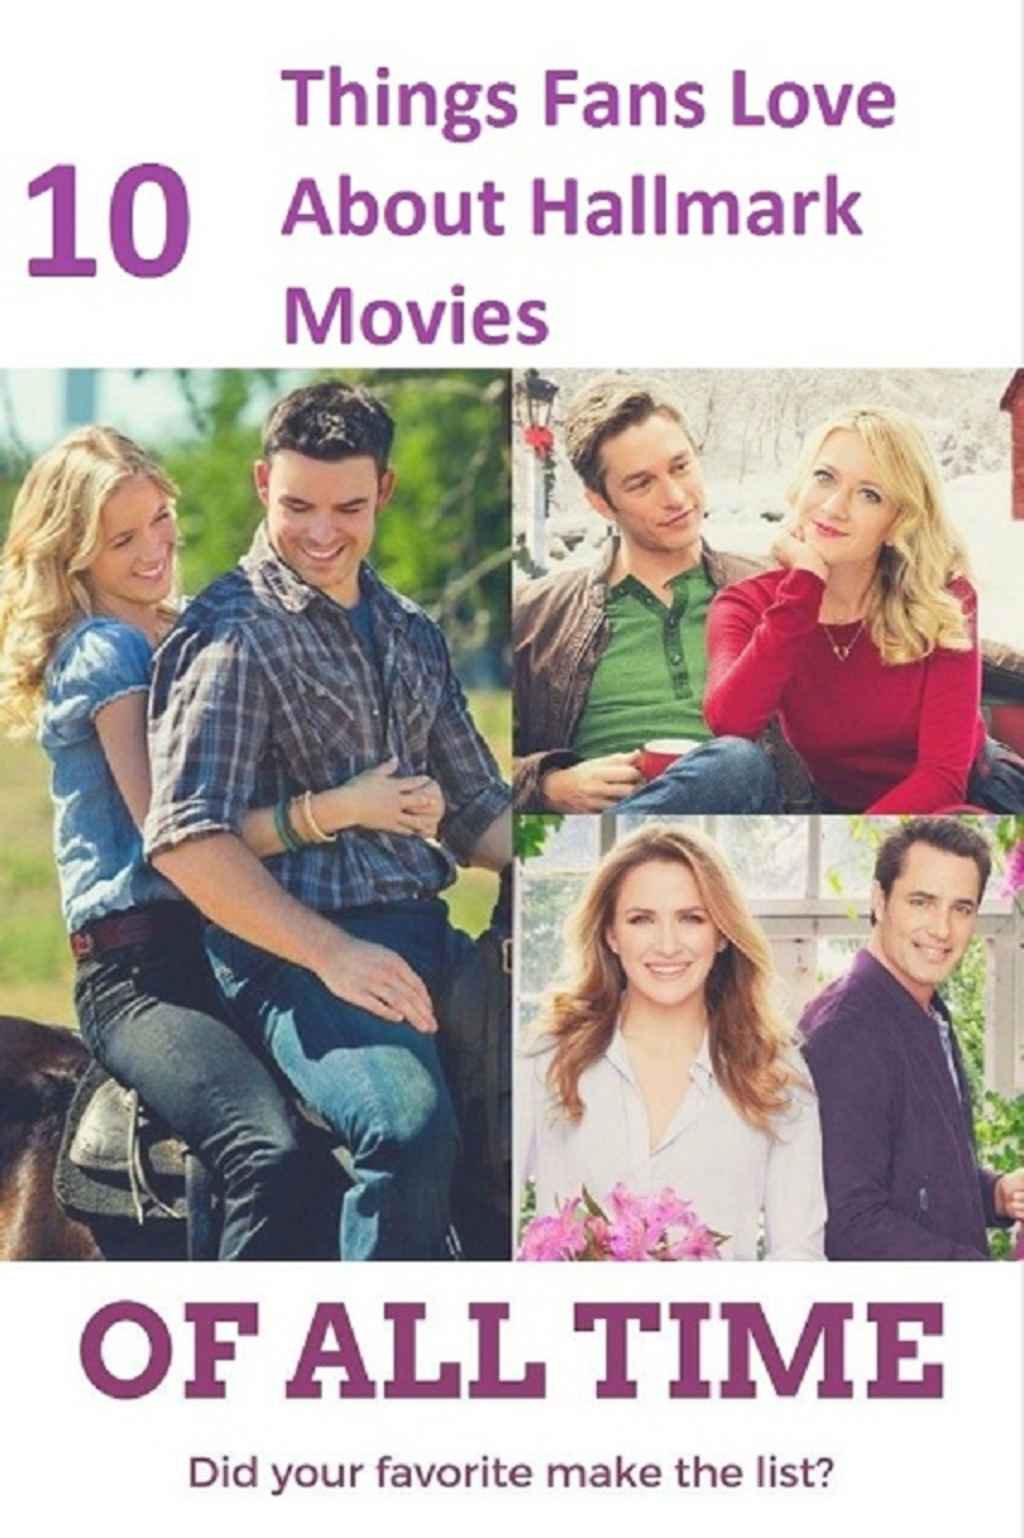 10 Things Fans Love About Hallmark Movies                                                                                                                           Hallmark Channel... via Bobby clarke